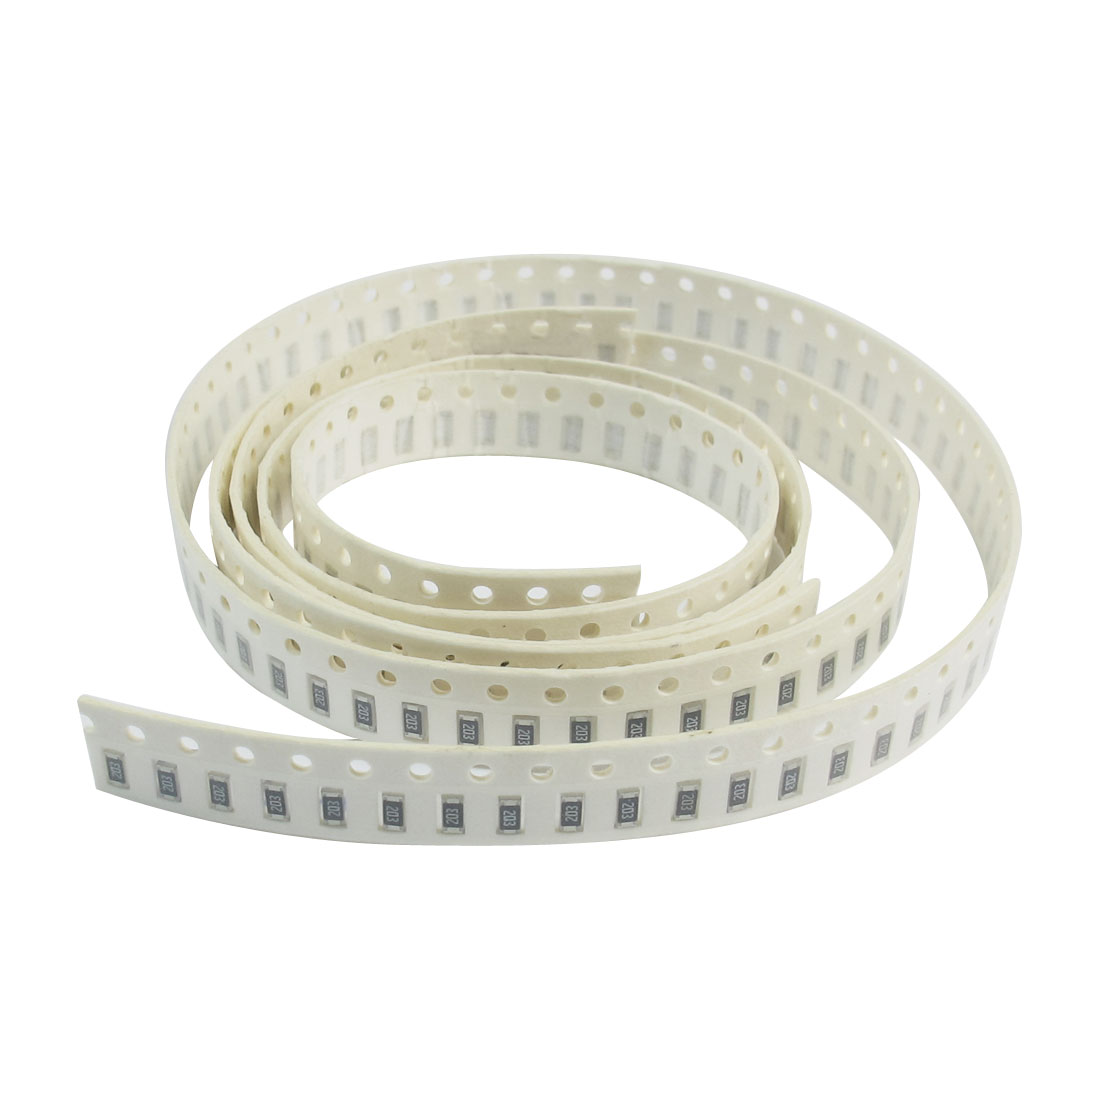 200 Pcs 1206 20K Ohm Resistance 1/4Watt 5% Tolerance Surface Mounting SMT SMD Chip Resistors Strip